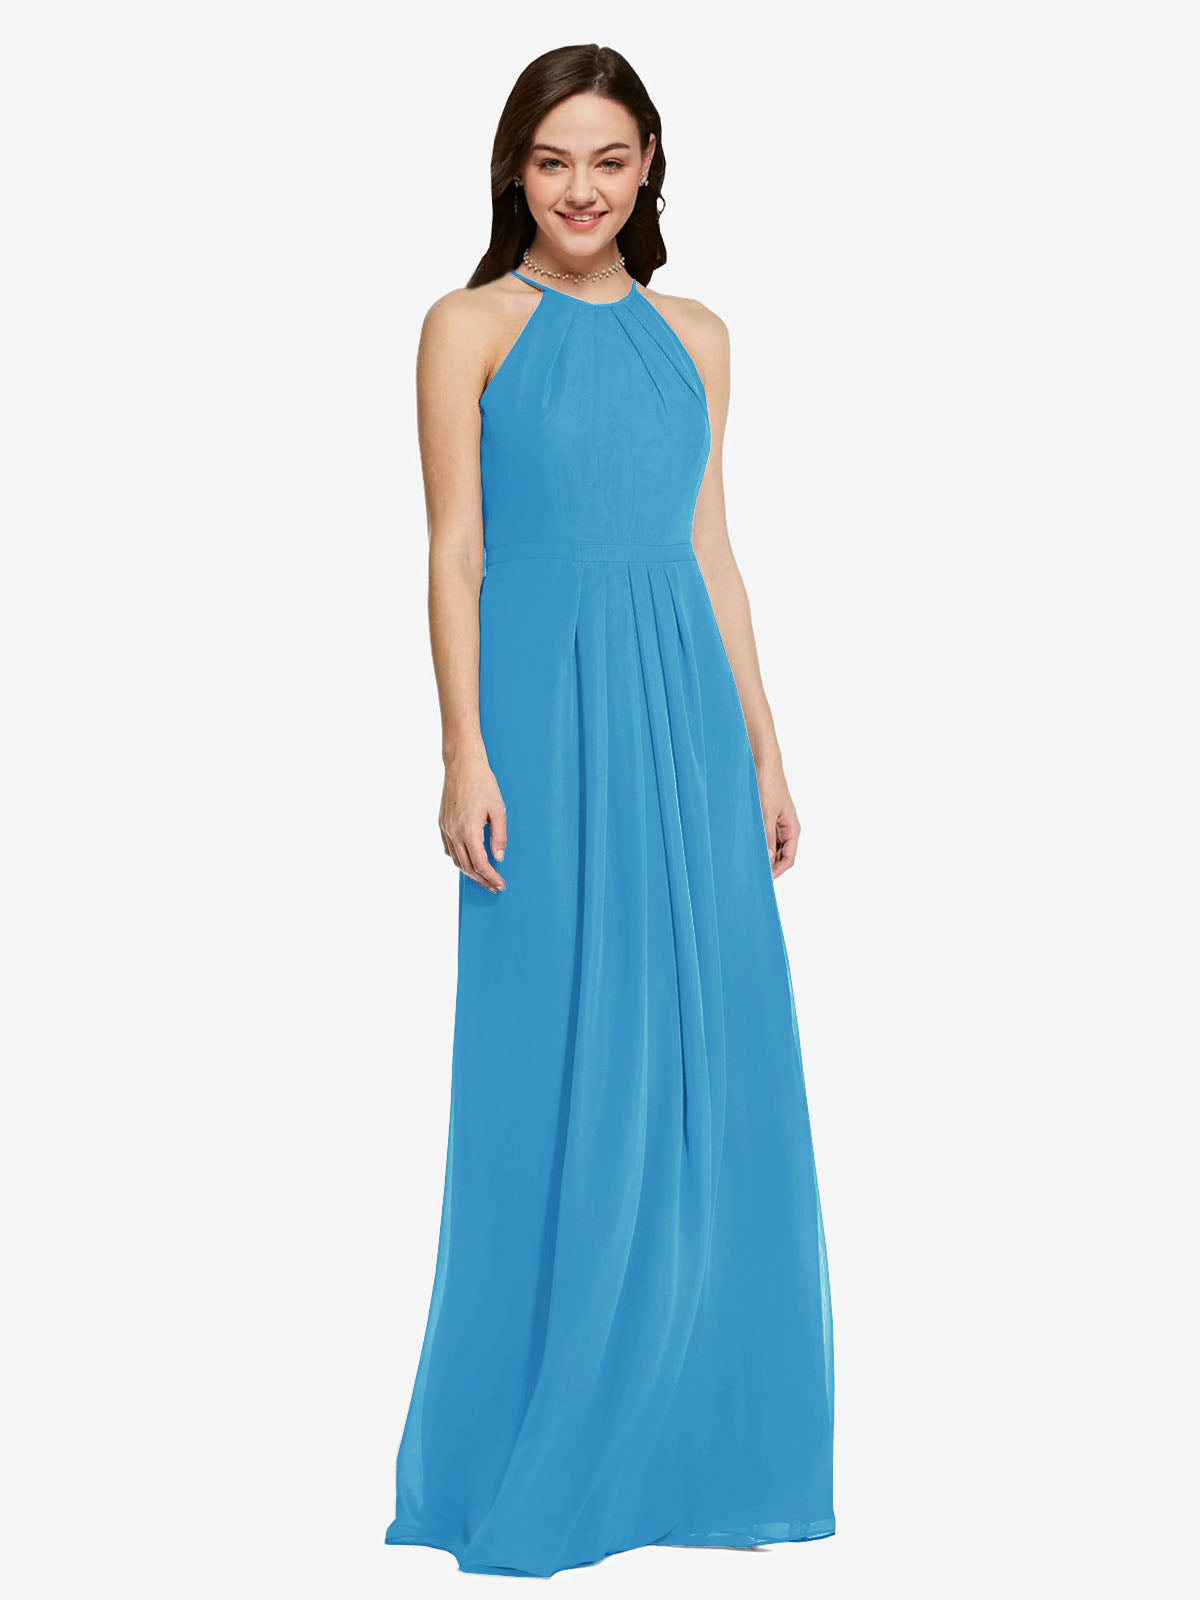 Long Sheath High Neck Halter Sleeveless Peacock Blue Chiffon Bridesmaid Dress Koloti